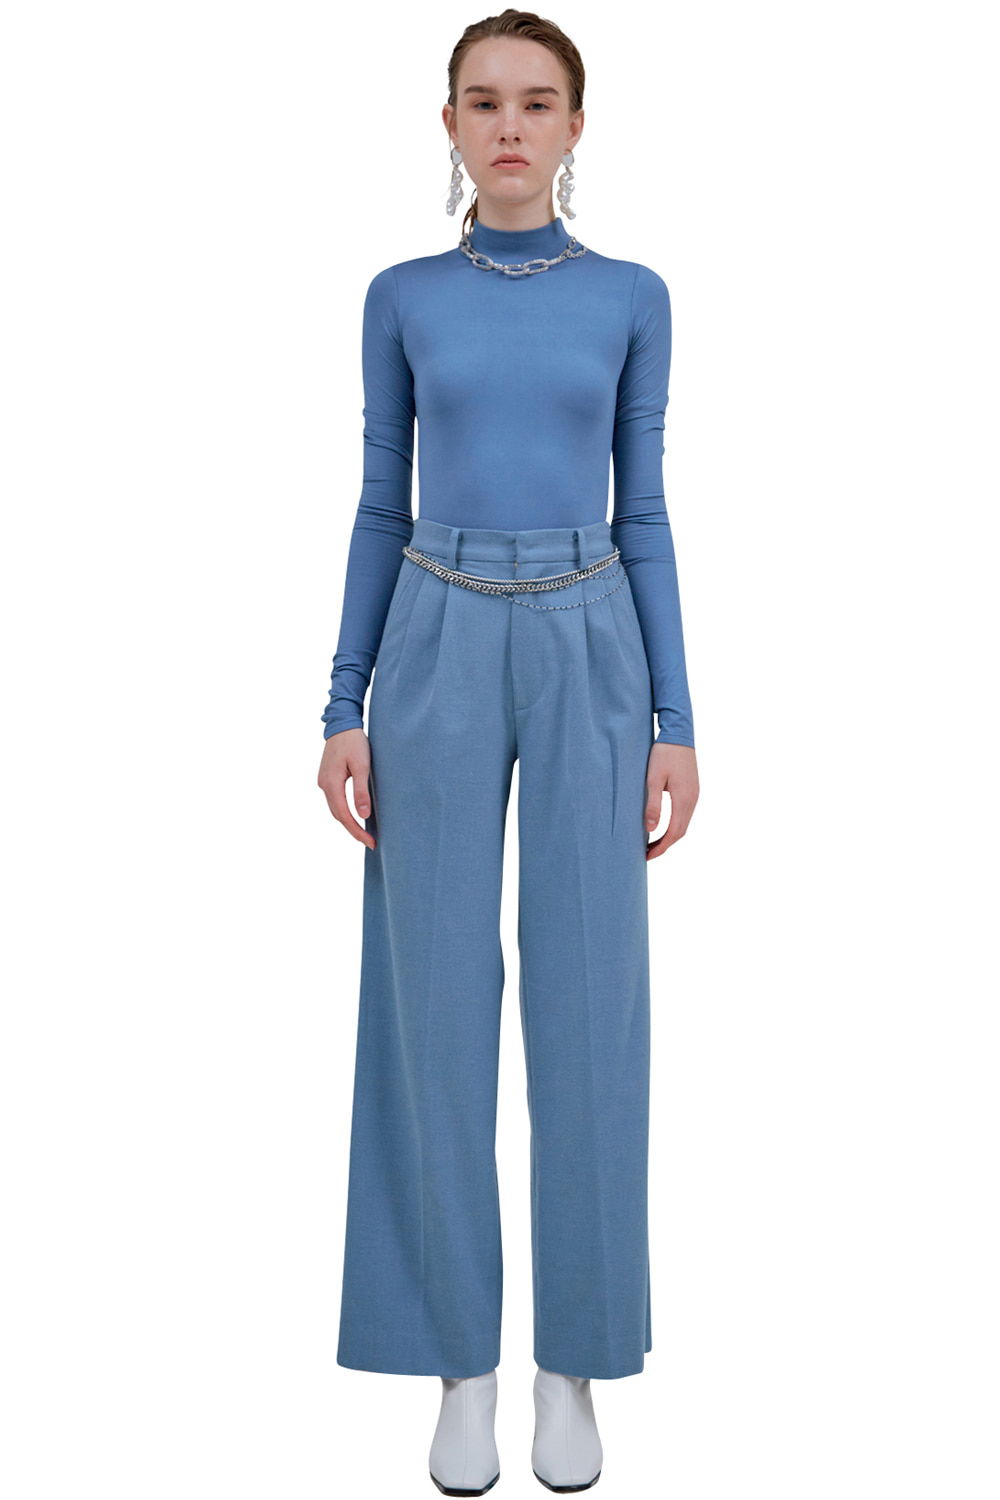 SKY-BLUE WOOL TROUSERS